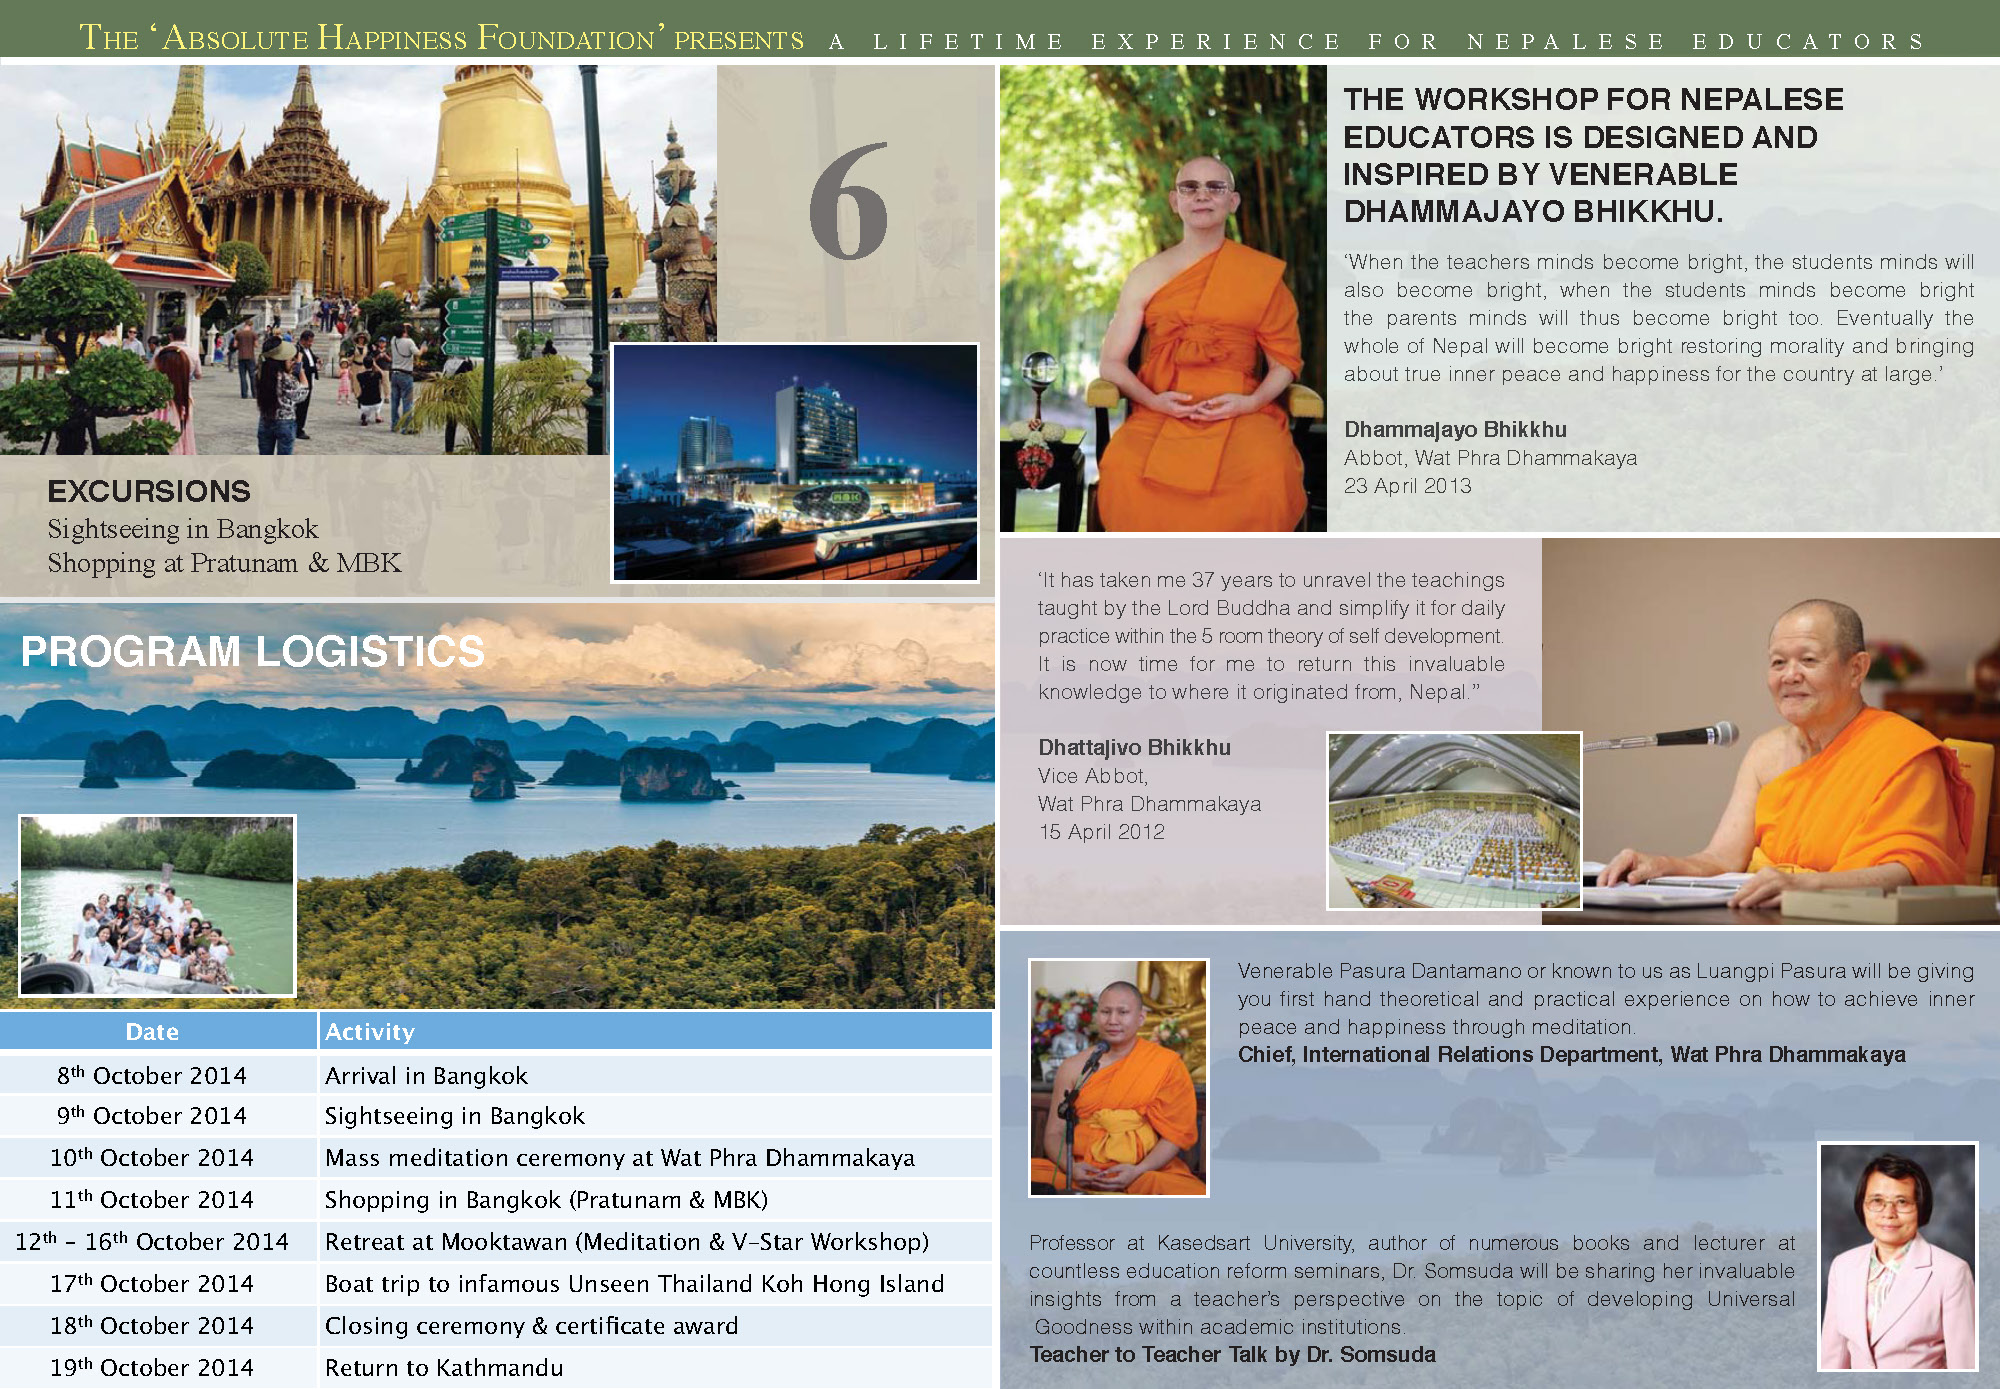 eBrochure 3 V-Star Oct 2014_Page_2